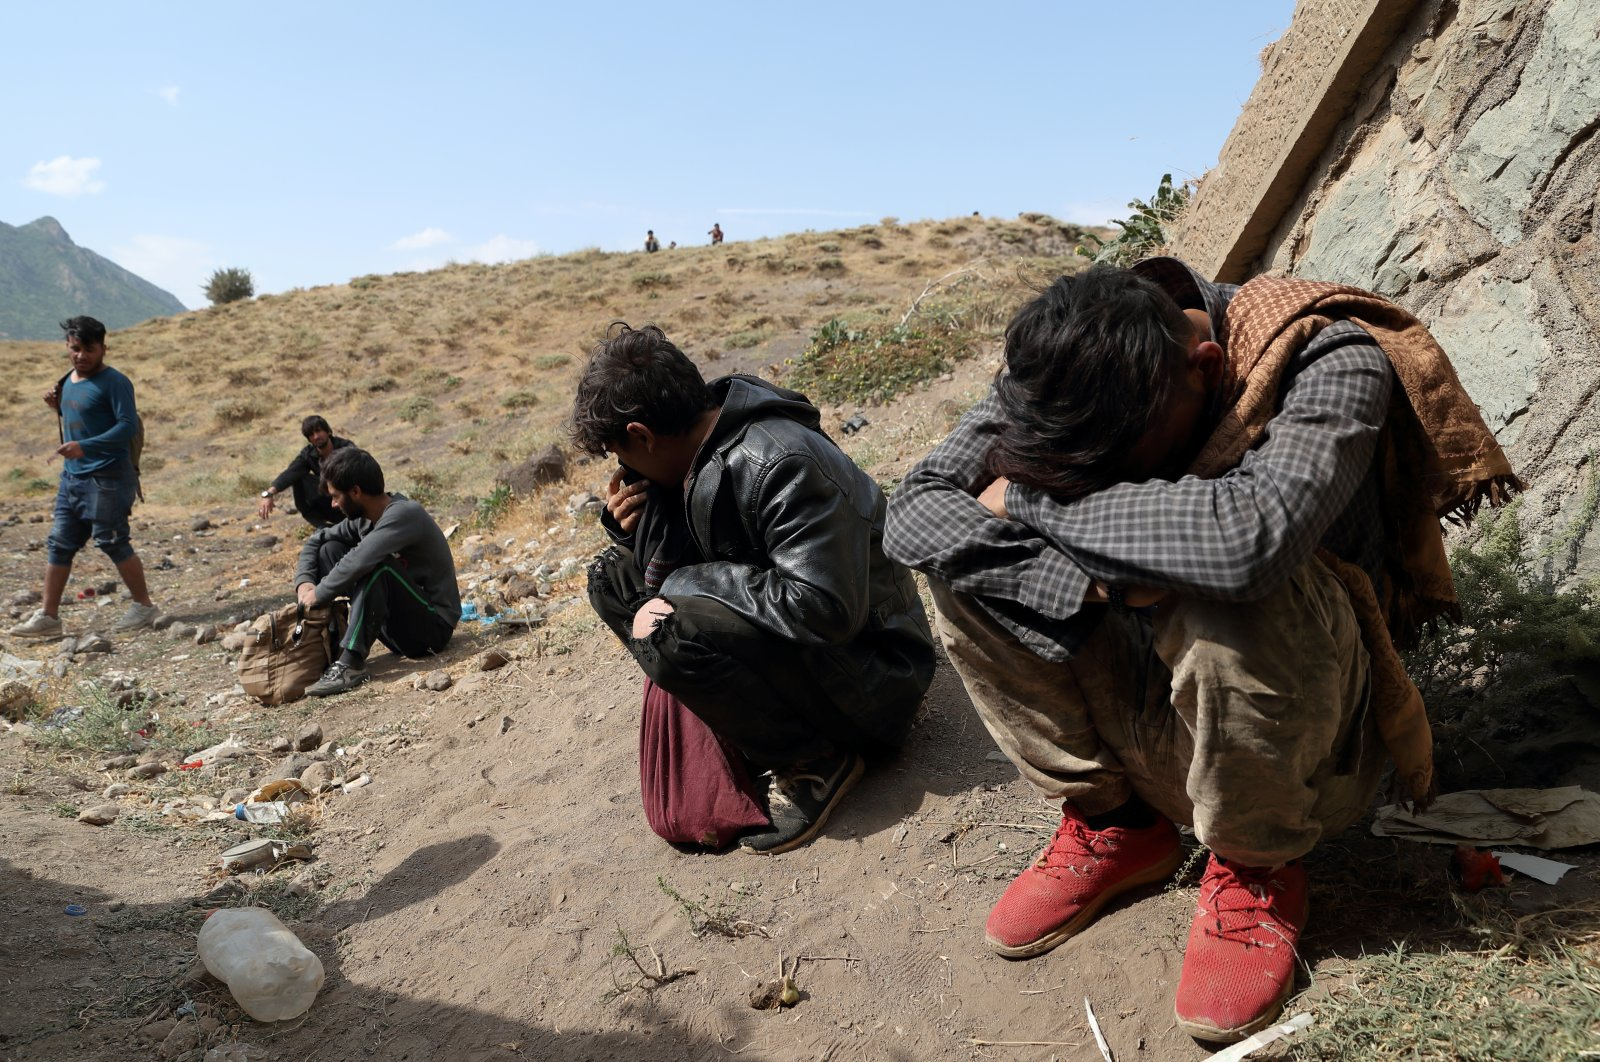 Afghan migrants hide from security forces after crossing illegally into Turkey from Iran, near Tatvan in Bitlis province, Turkey, Aug. 23, 2021. (REUTERS Photo)